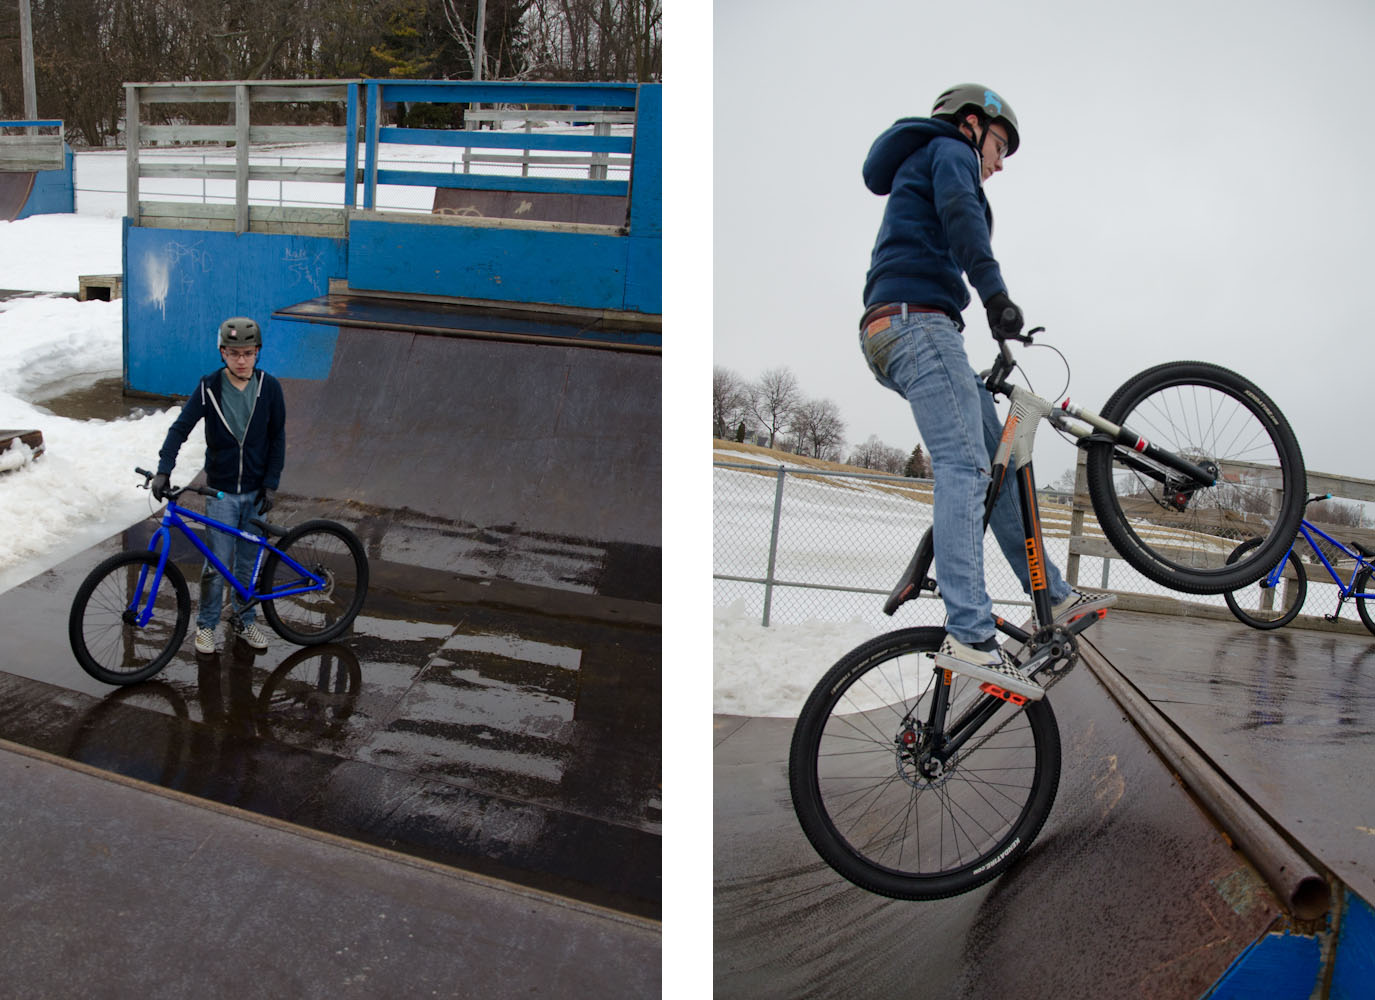 Anthony riding his bike in a wet metal half-pipe